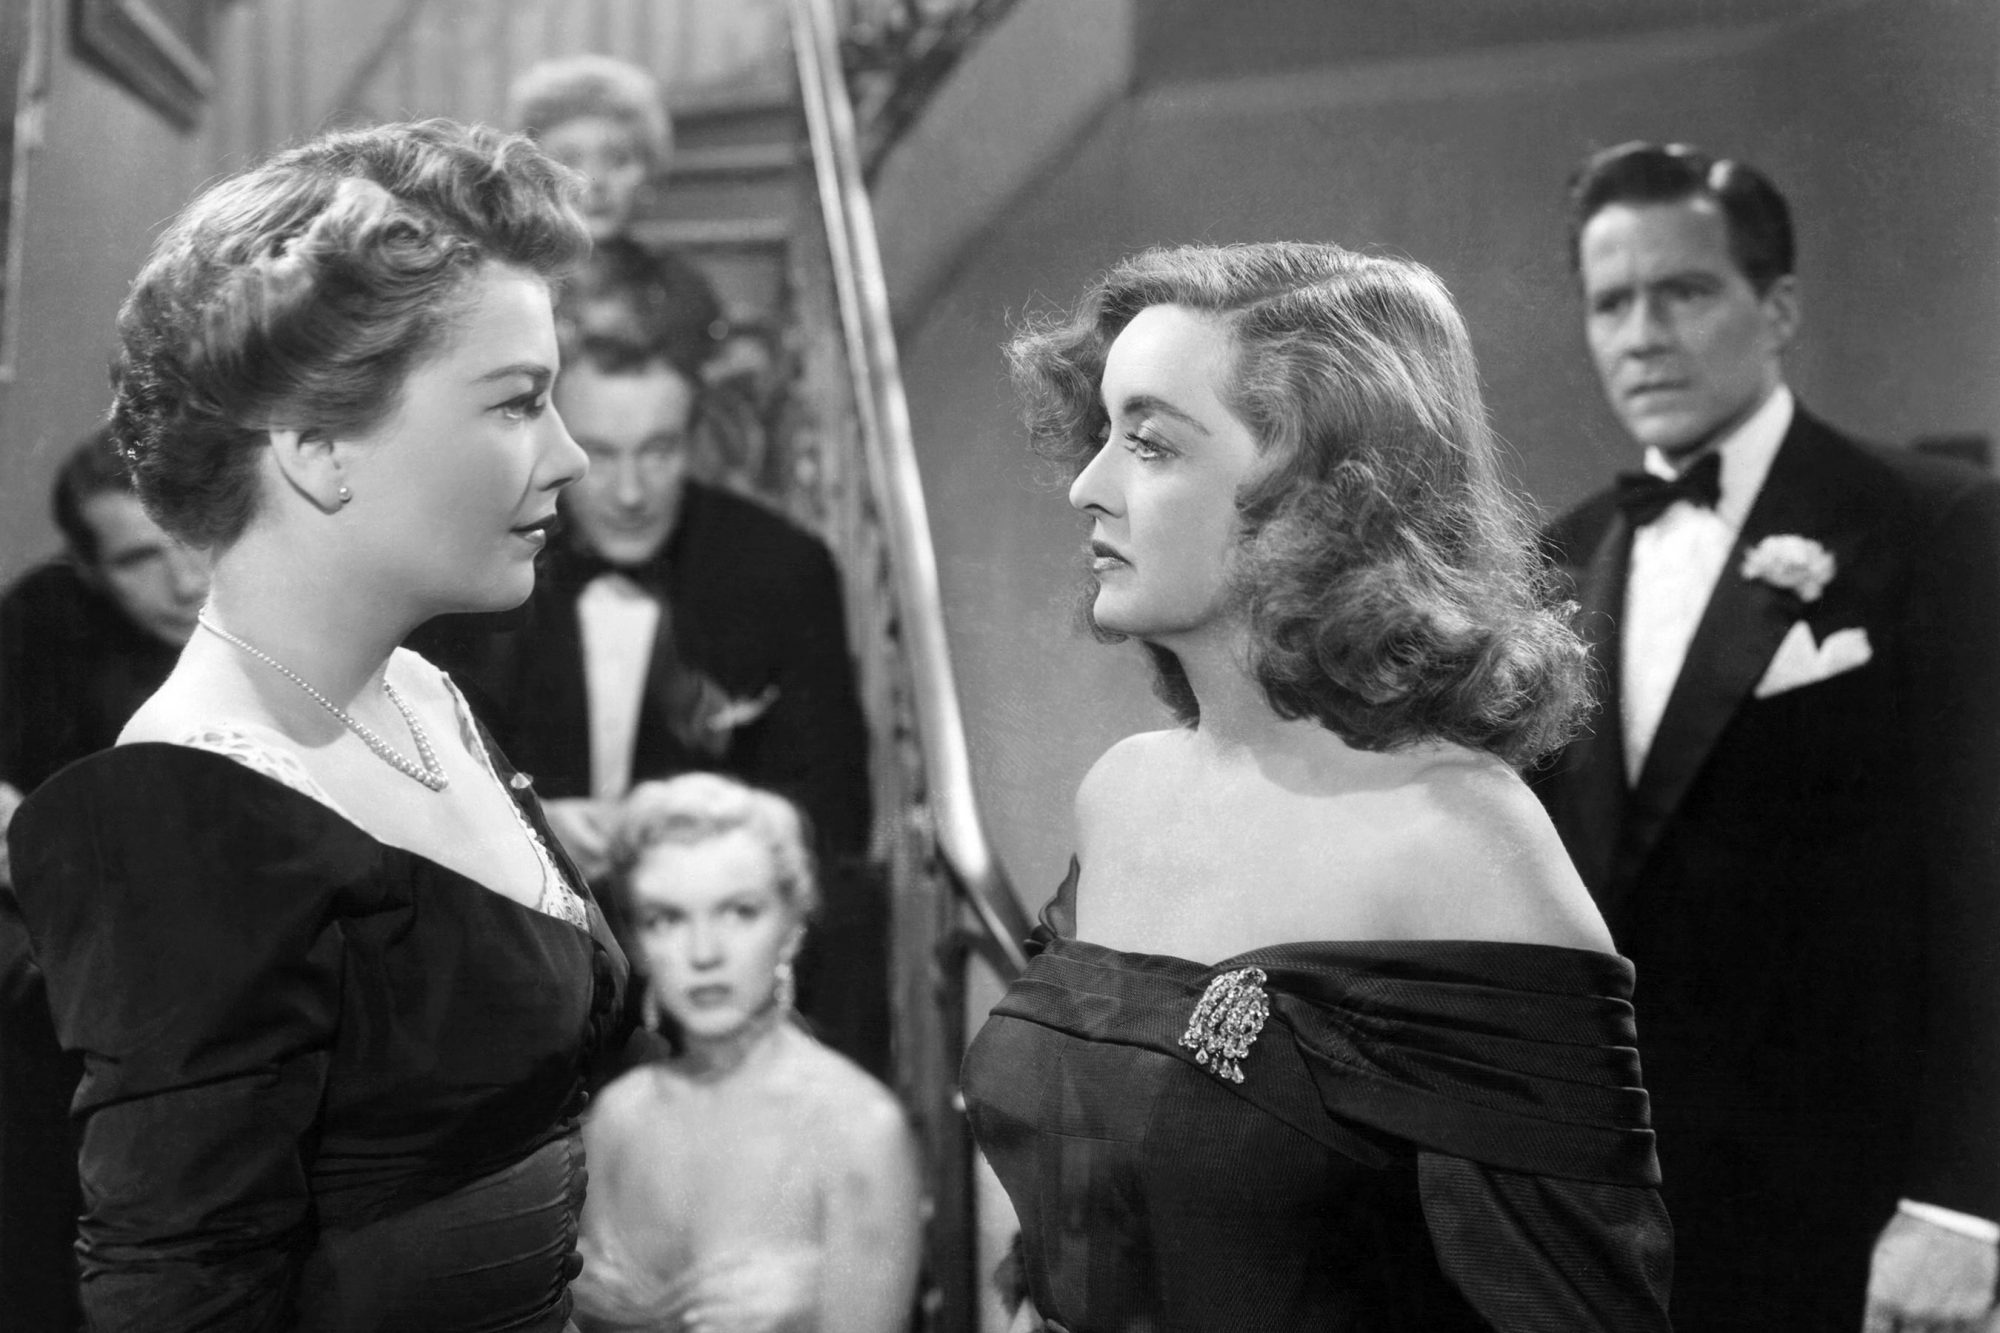 ALL ABOUT EVE, front, from left: Anne Baxter, Bette Davis; background: Gary Merrill, Celeste Holm,